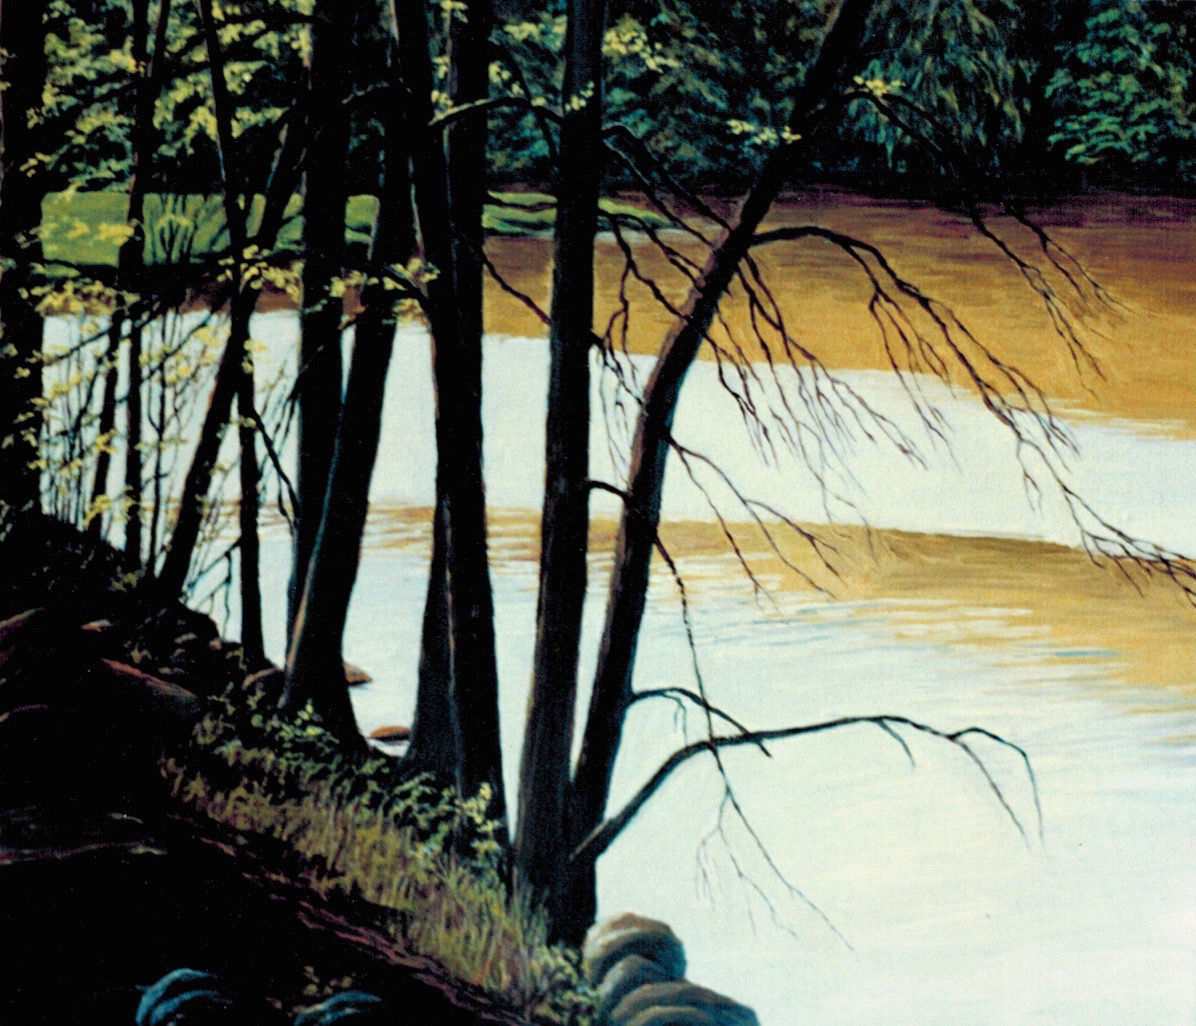 The banks of the Beaudette